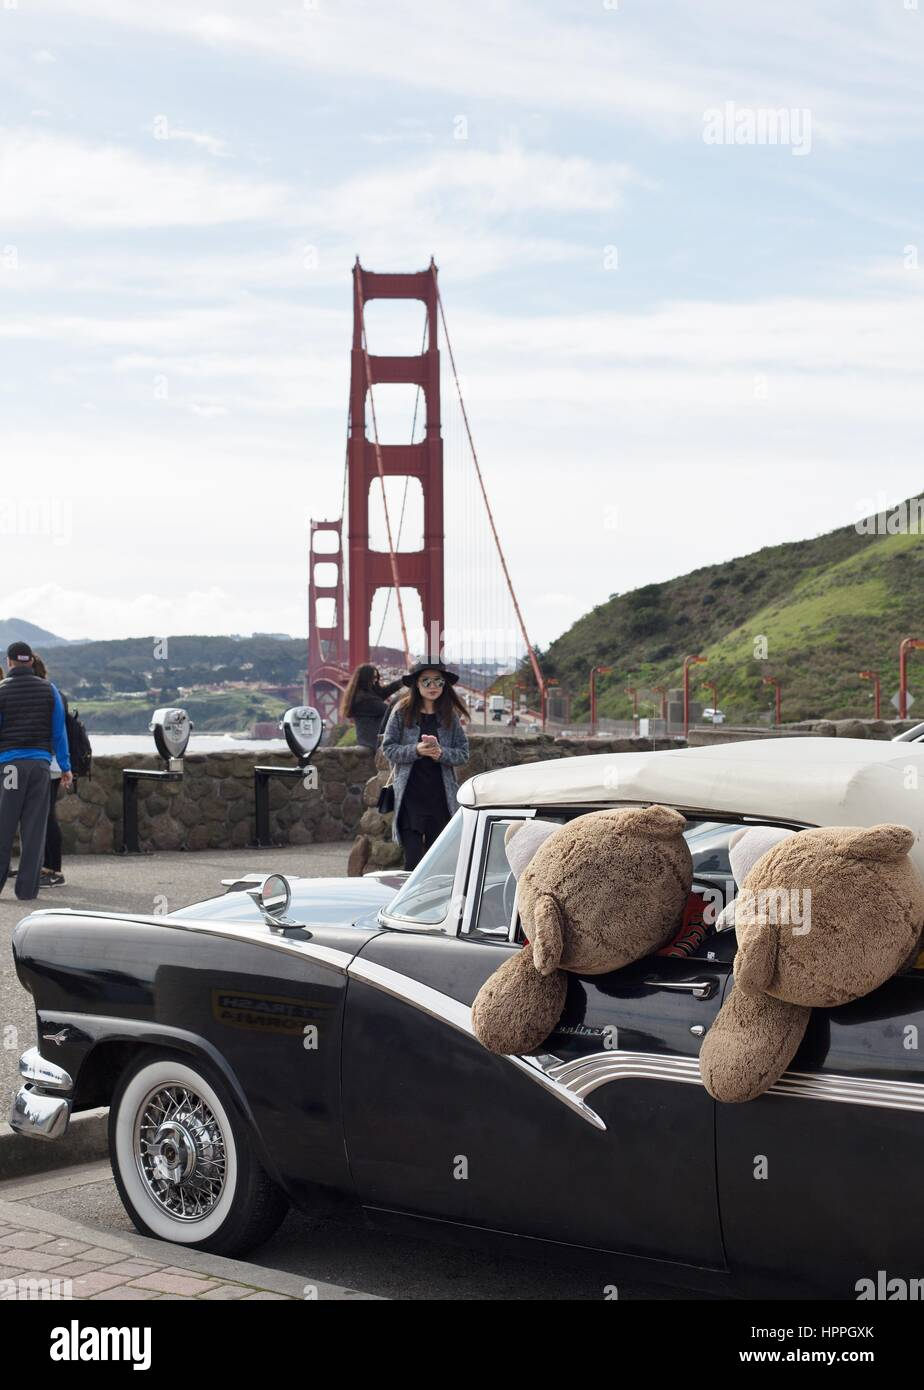 A tourist taking a picture of a vintage car full of giant teddy bears at the observation area of Golden Gate bridge - Stock Image